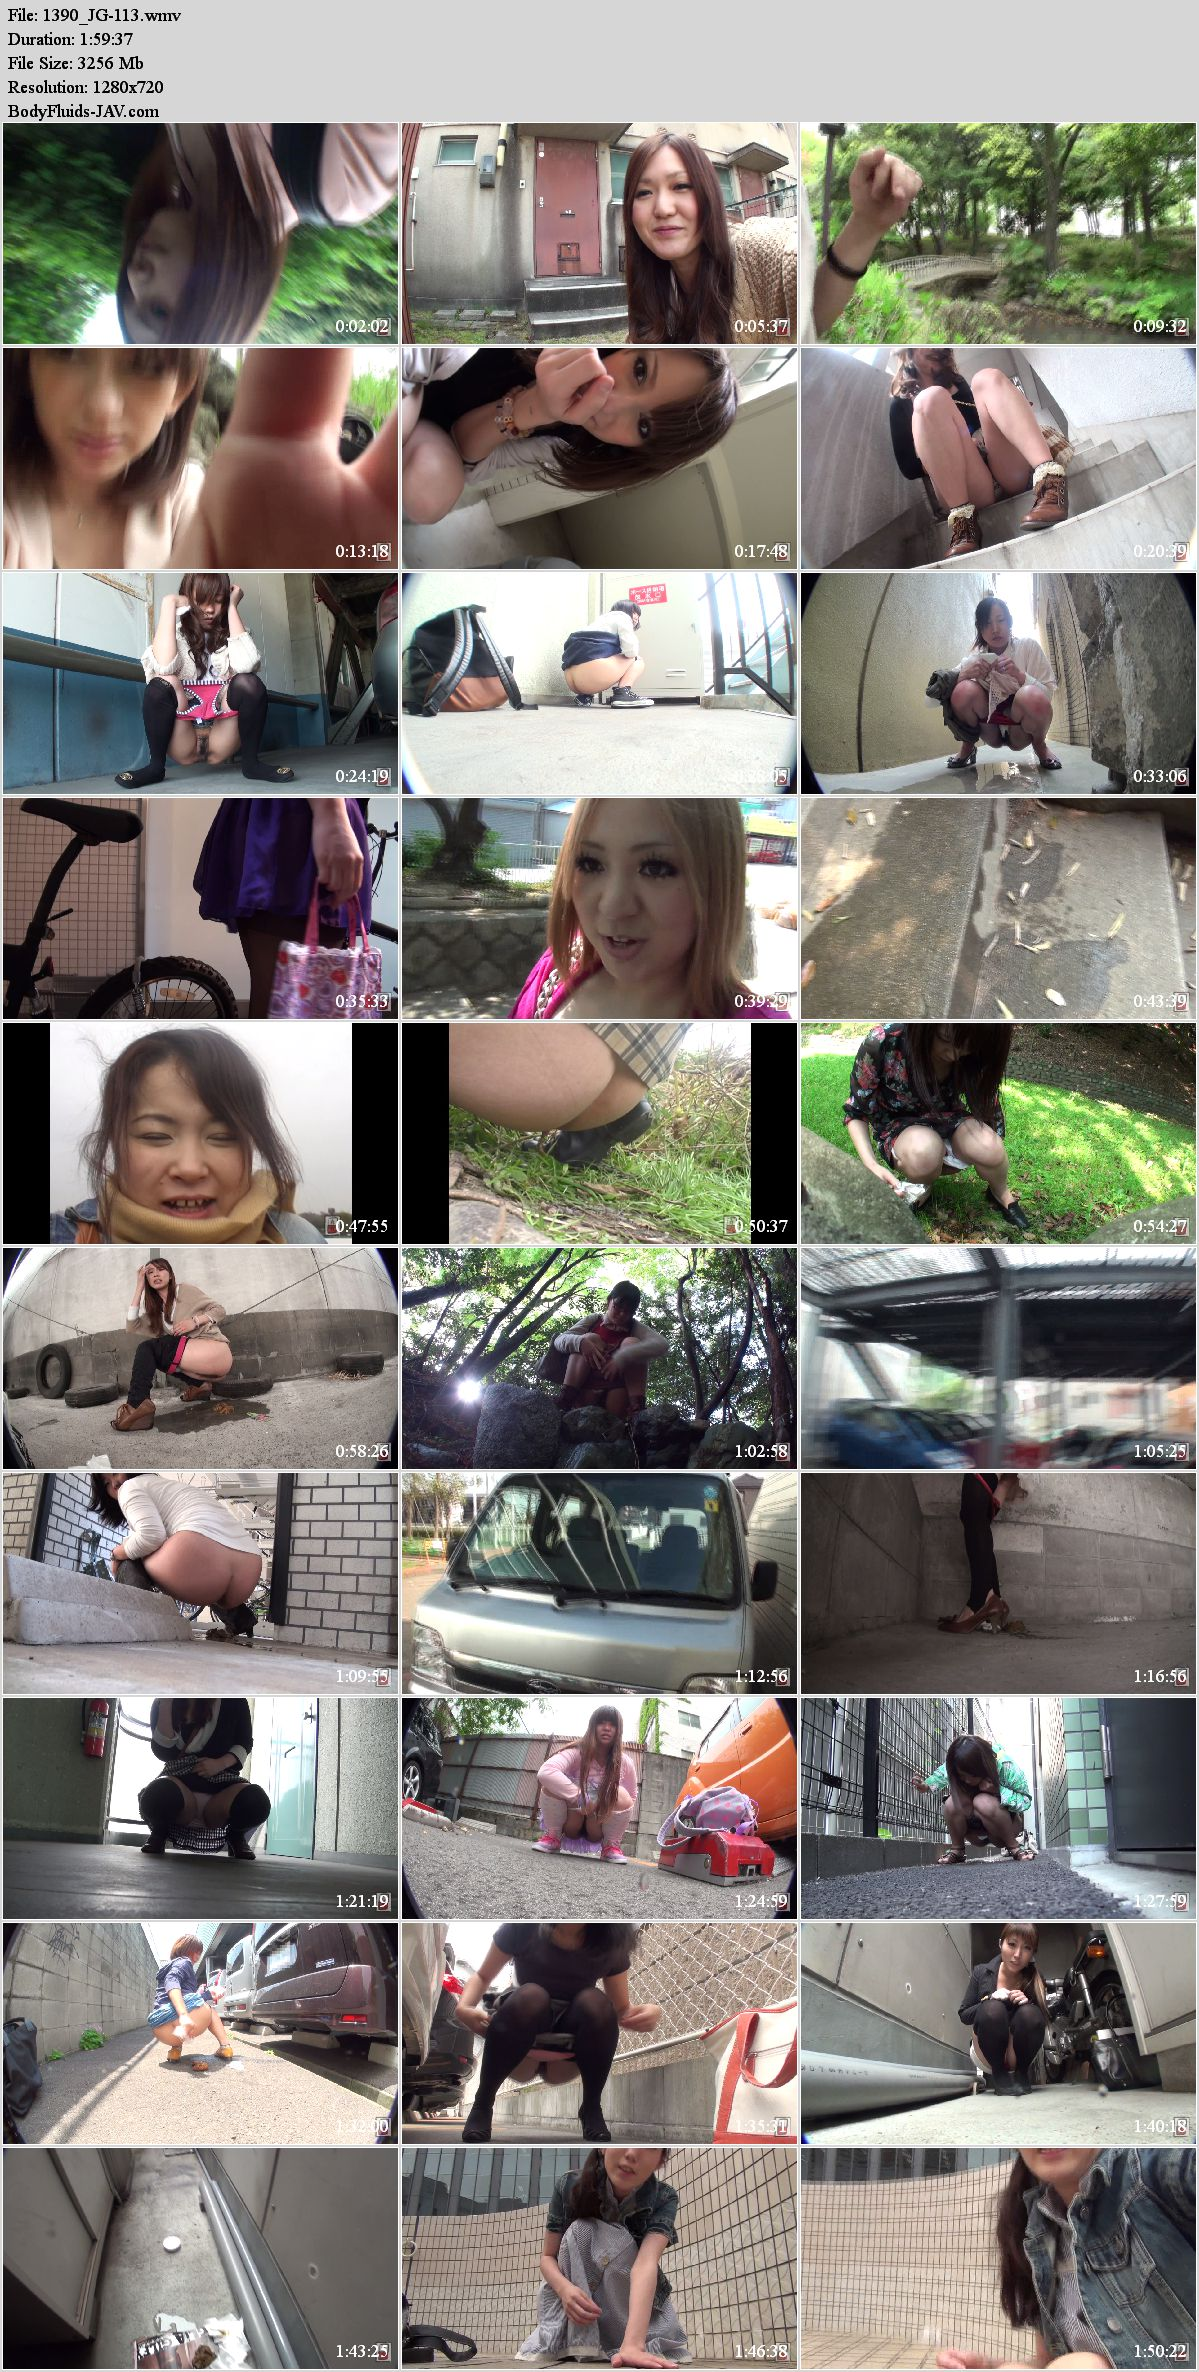 JG-113 Outside self filmed pooping of pissing episodes. (HD 720p)